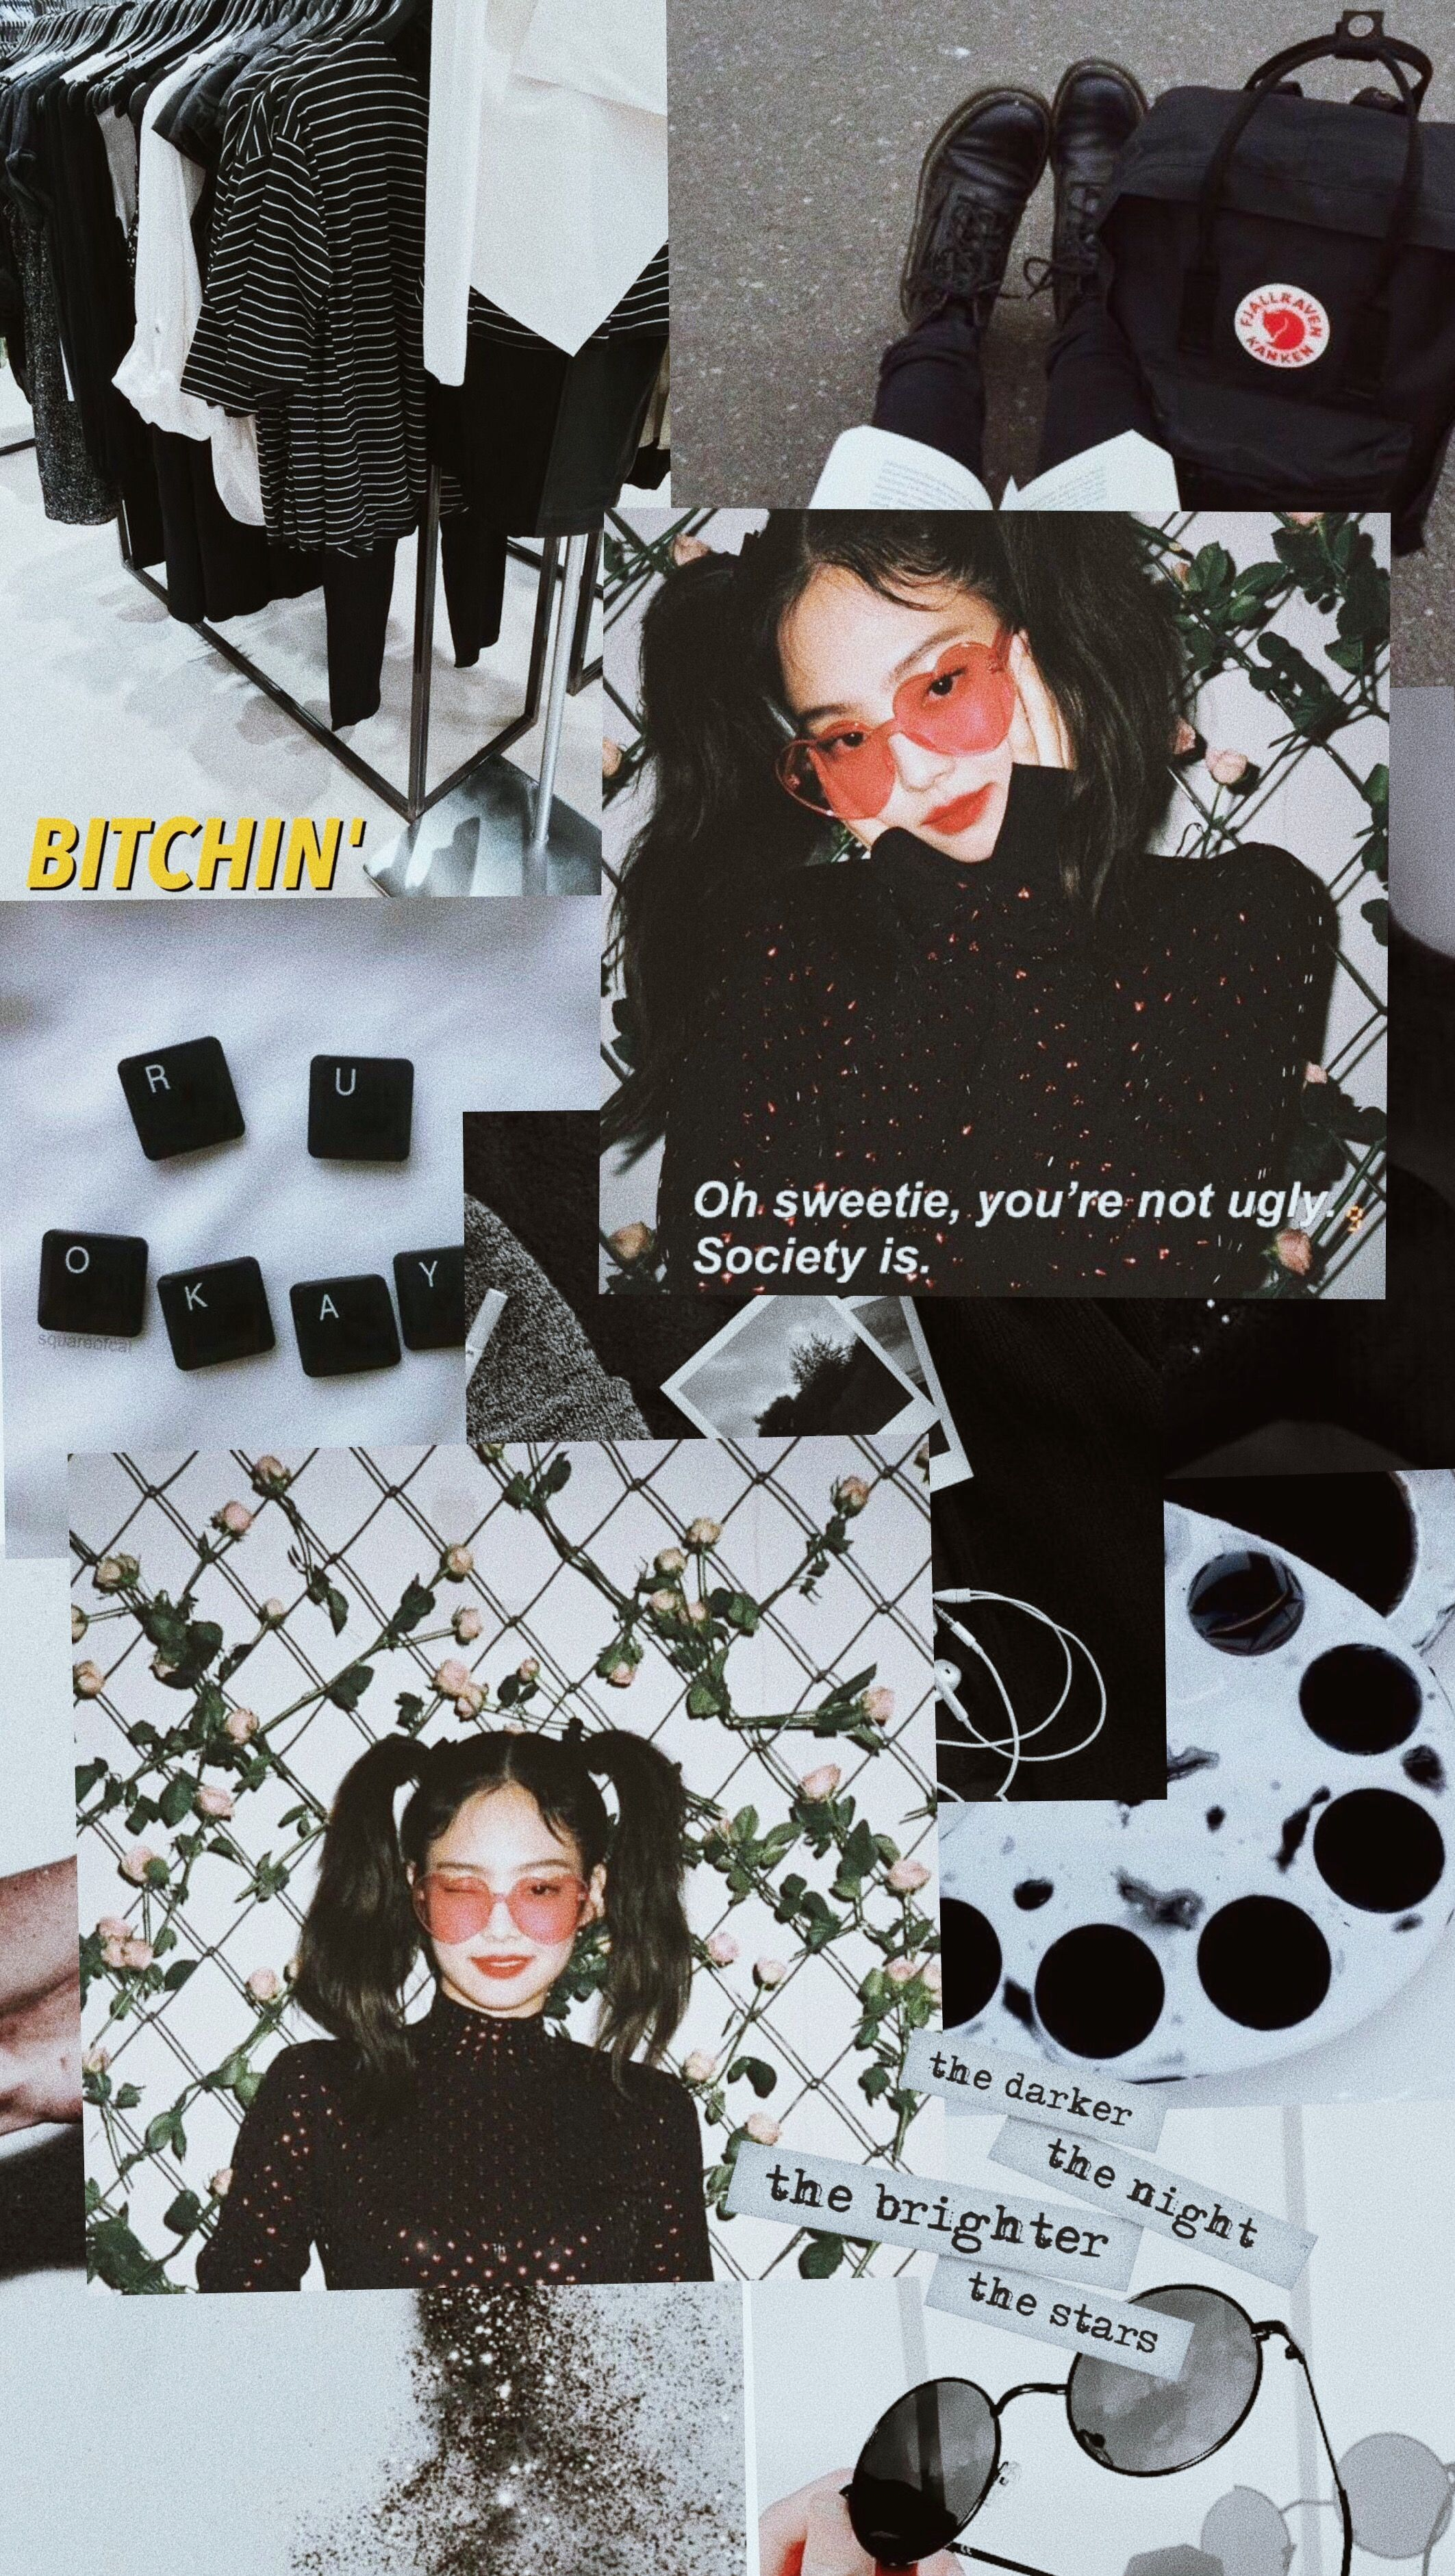 jennie aesthetic wallpapers